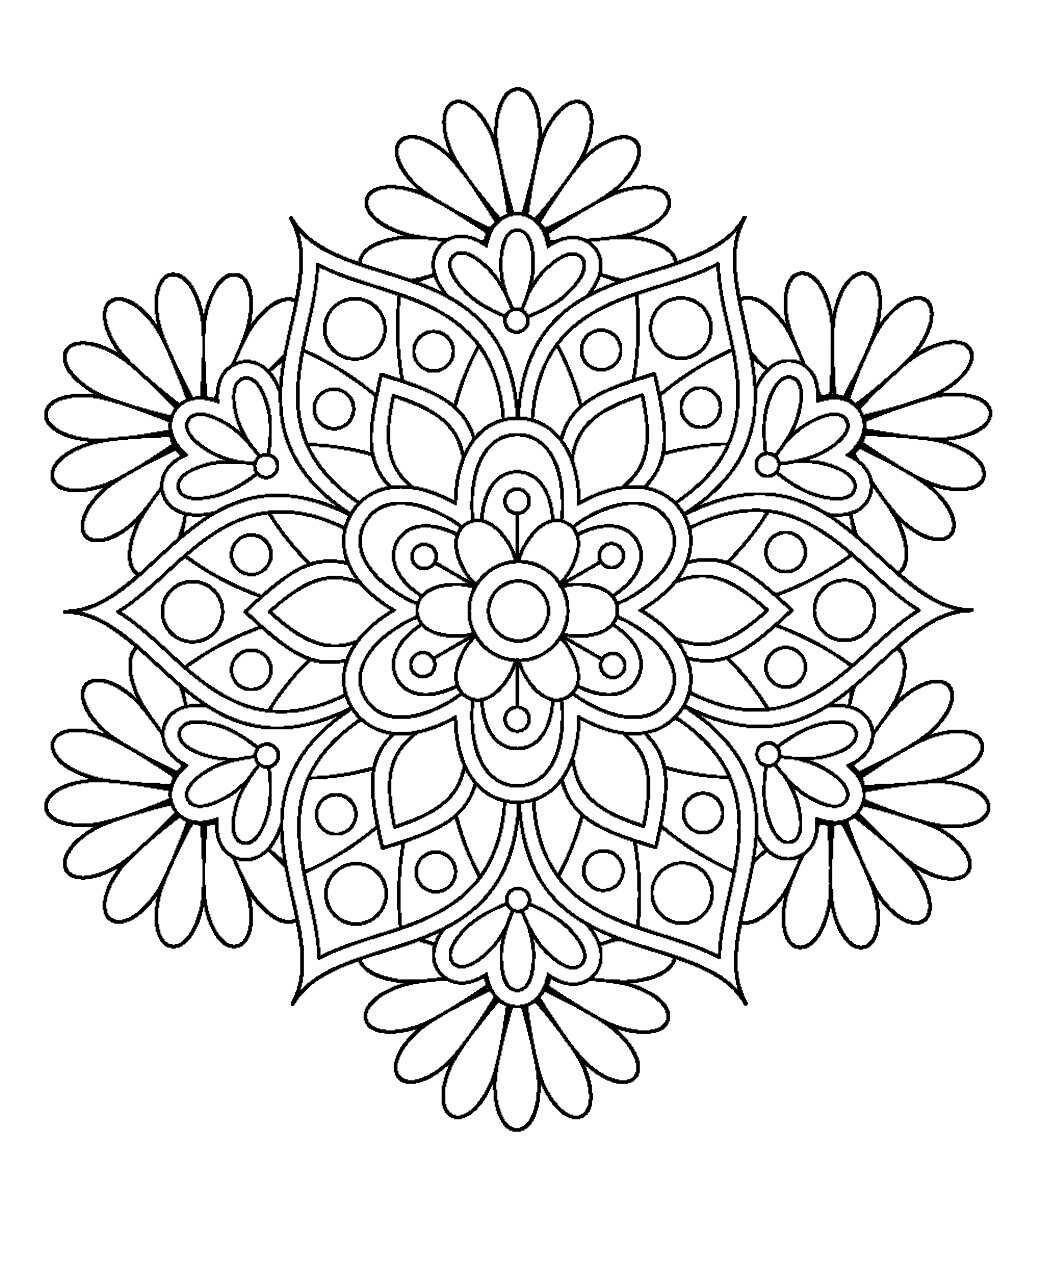 Pin von Kortney Ross auf coloring pages | Pinterest | Steinkunst ...